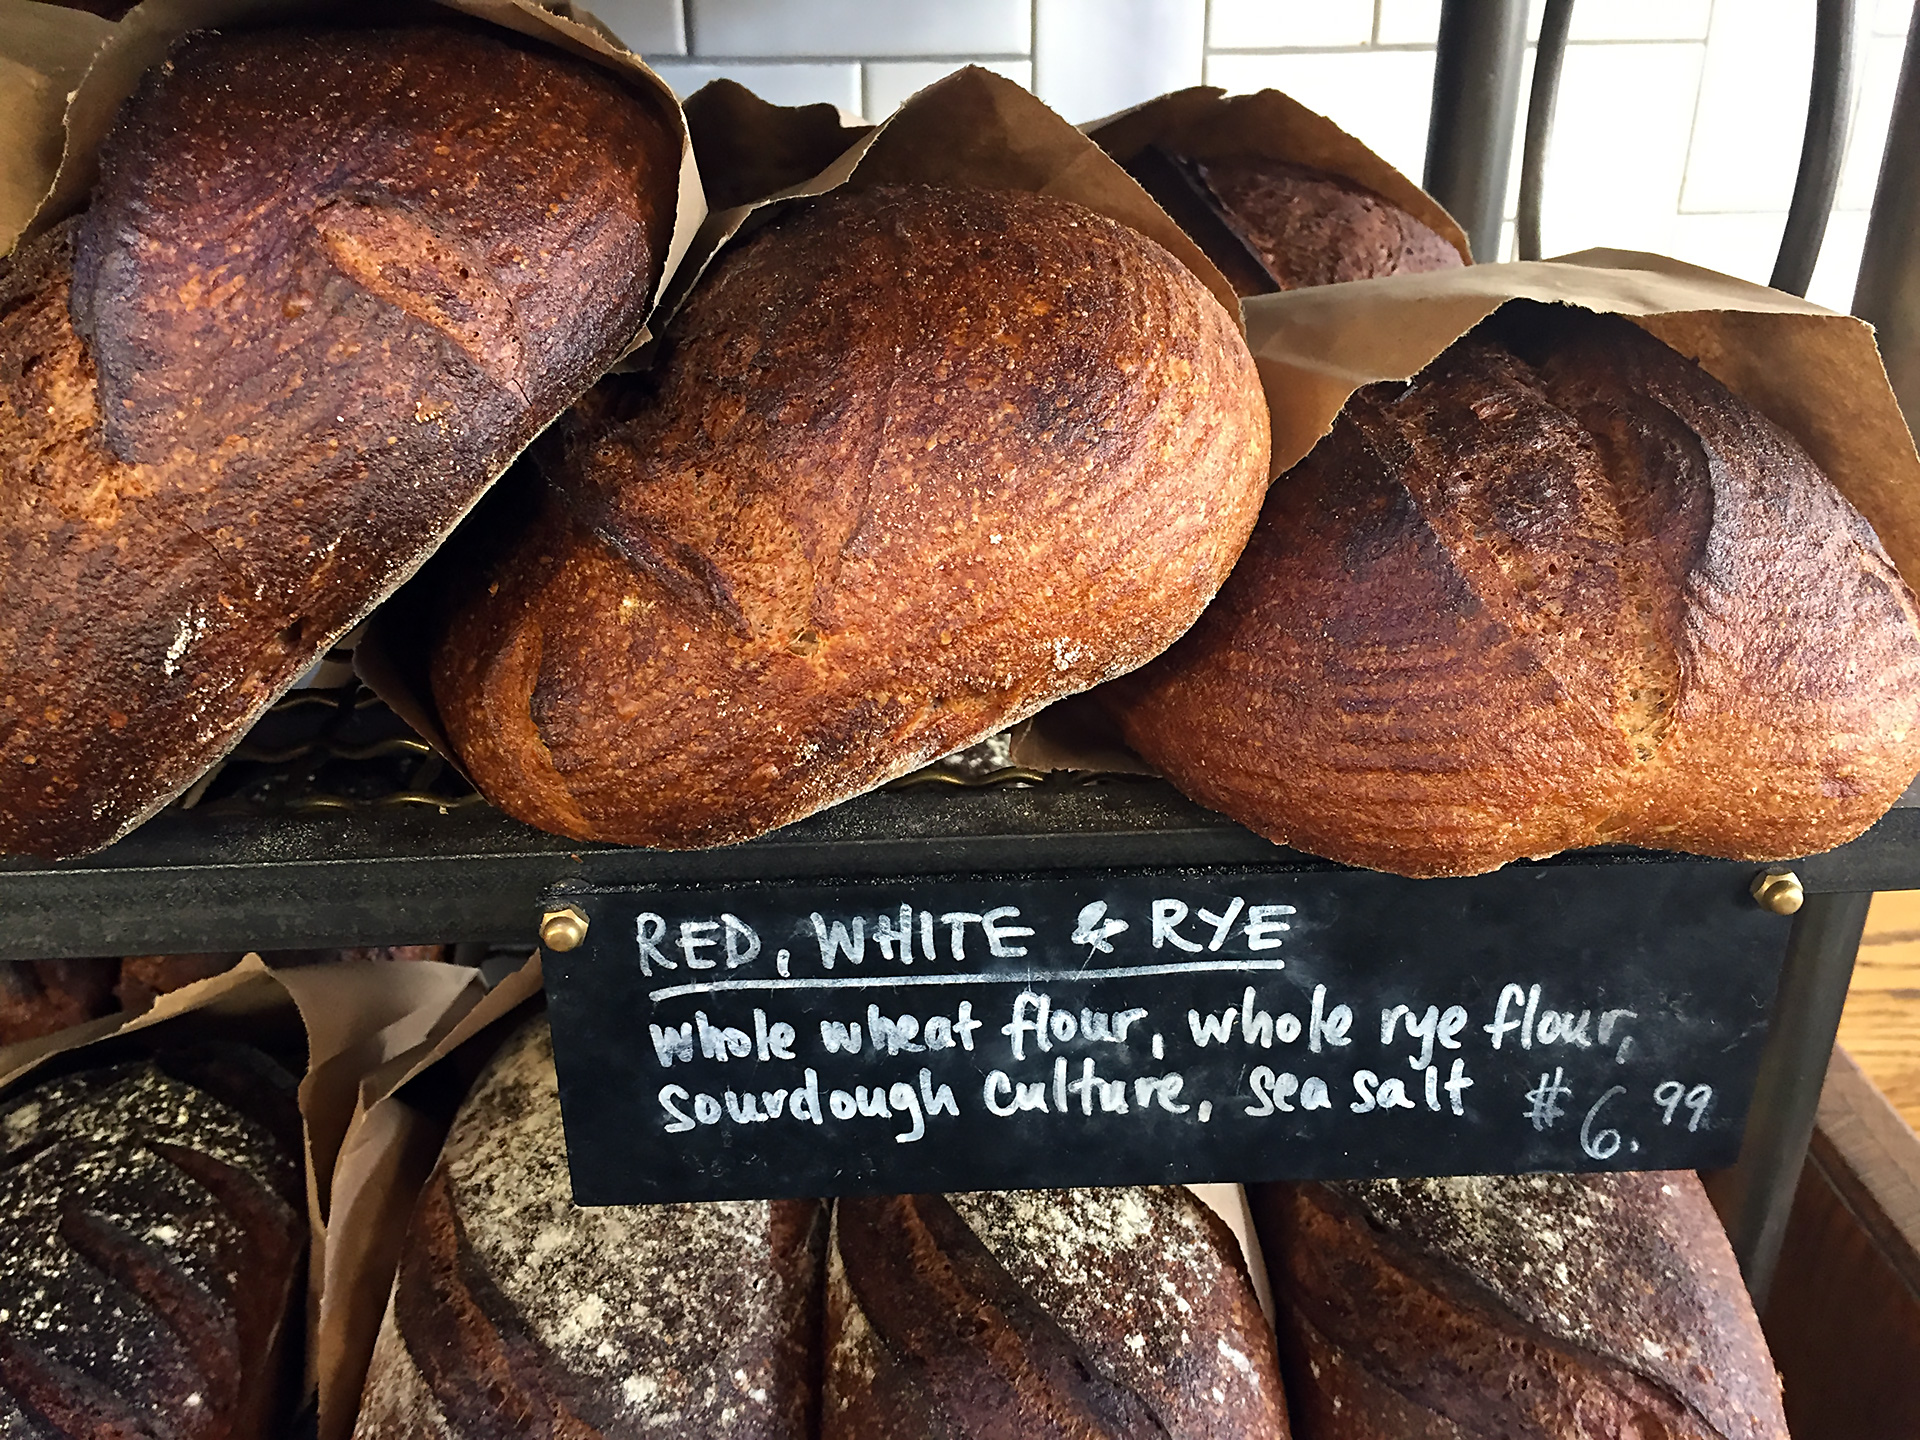 Josey Baker Red, White & Rye bread for sale at The Mill.